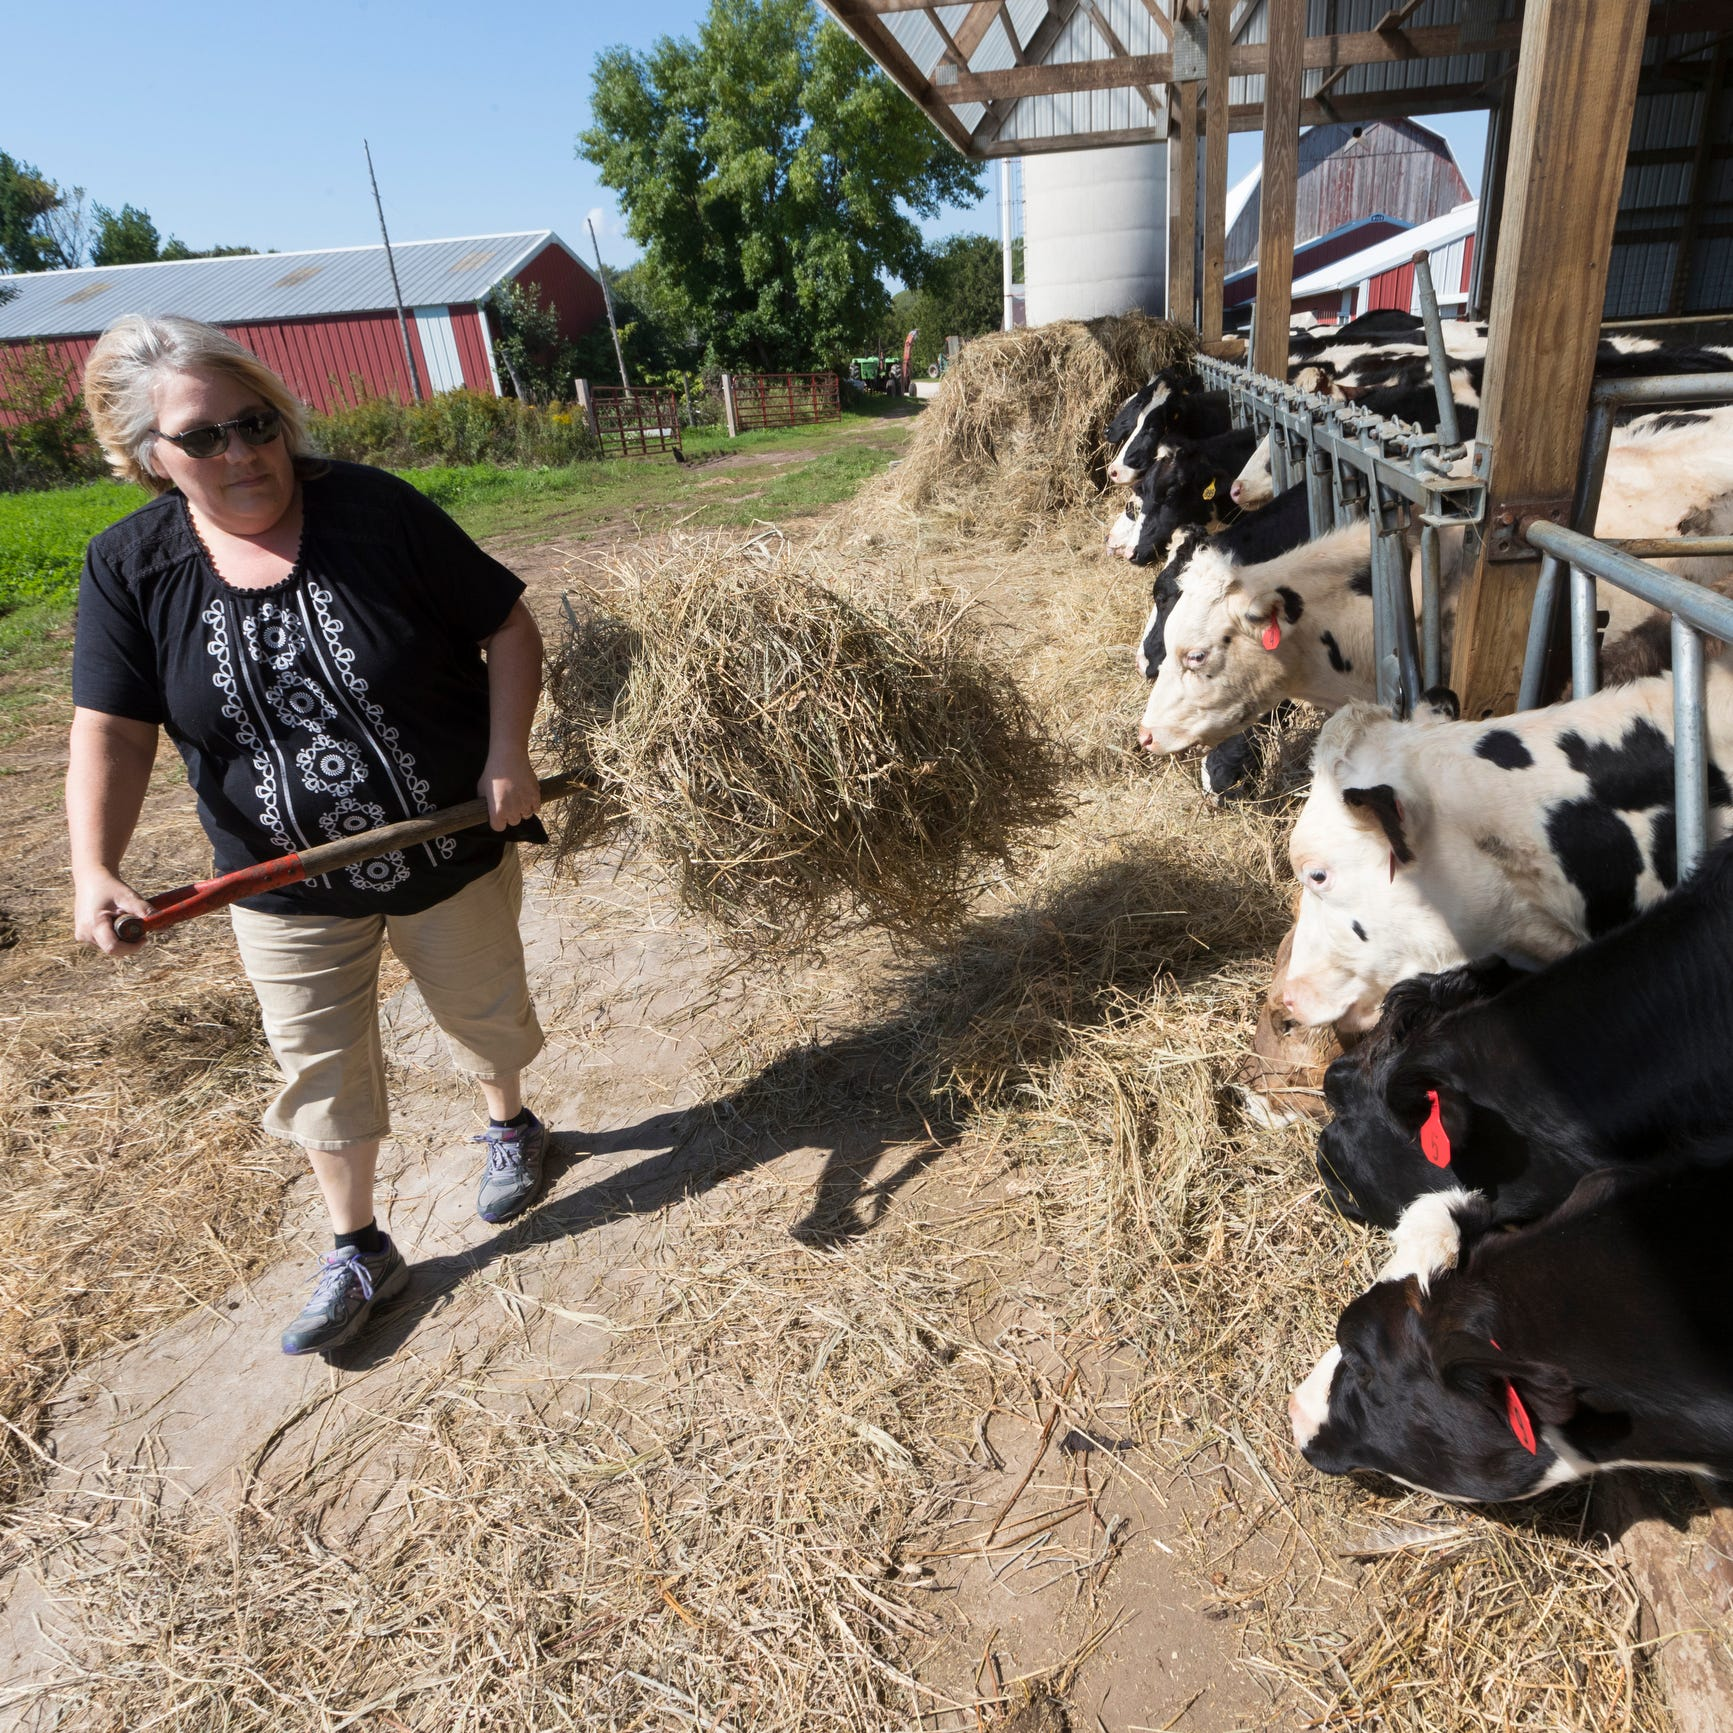 Wisconsin dairy farmers, in debt and out of options, turn to GoFundMe for bailout